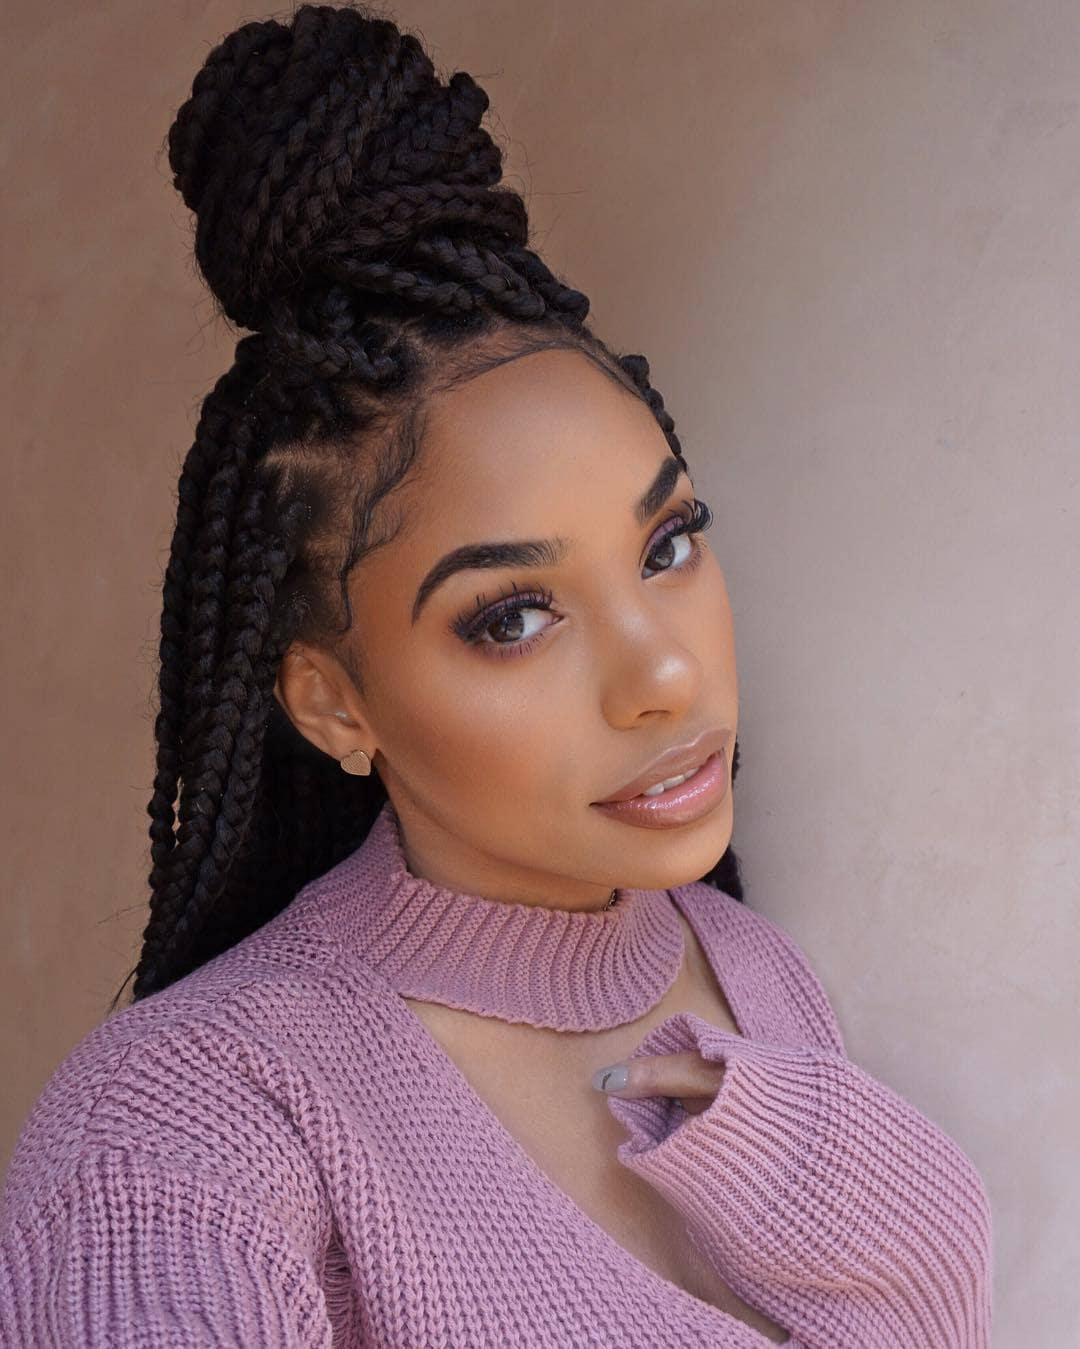 woman with thick box braids styled into half-up, half-down style